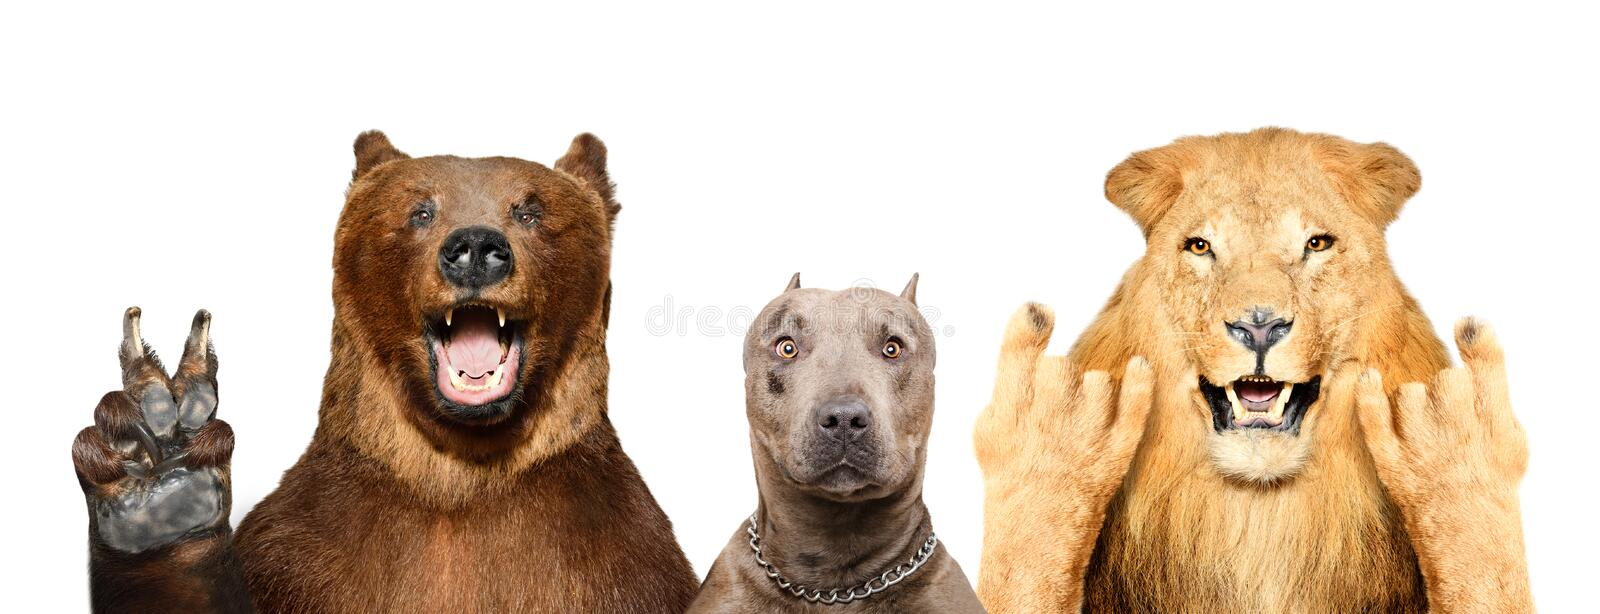 Funny animals showing gestures. Isolated on white background stock photography